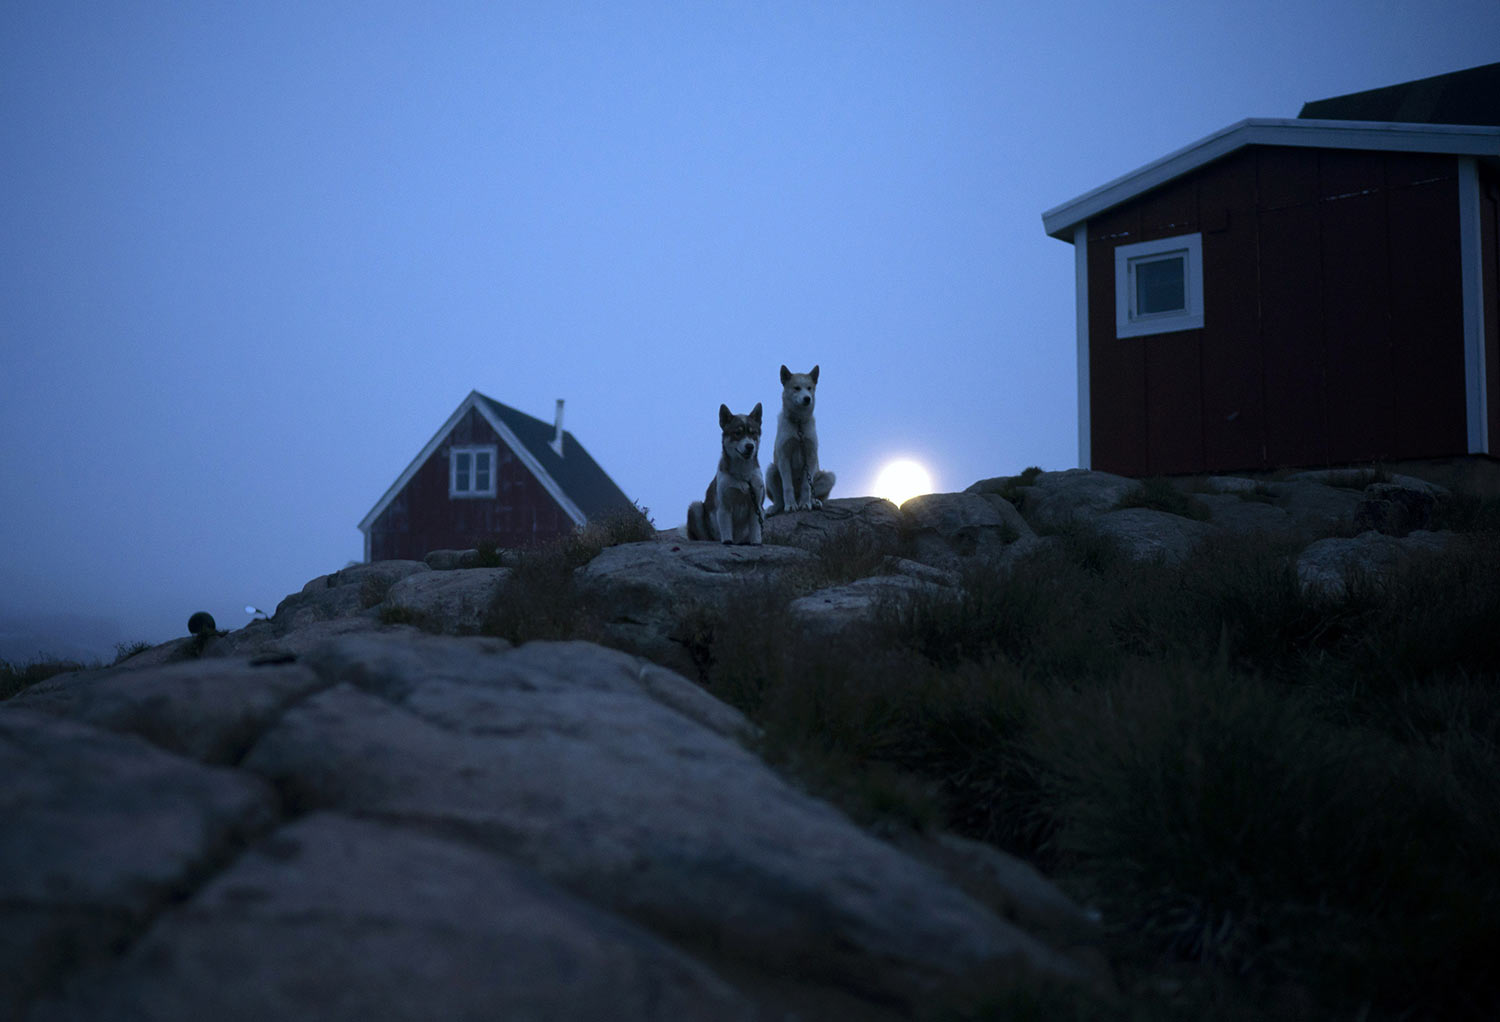 Dogs sit outside a home in Kulusuk, Greenland, early Thursday, Aug. 15, 2019. Greenland has been melting faster in the last decade and this summer, it has seen two of the biggest melts on record since 2012. (AP Photo/Felipe Dana)